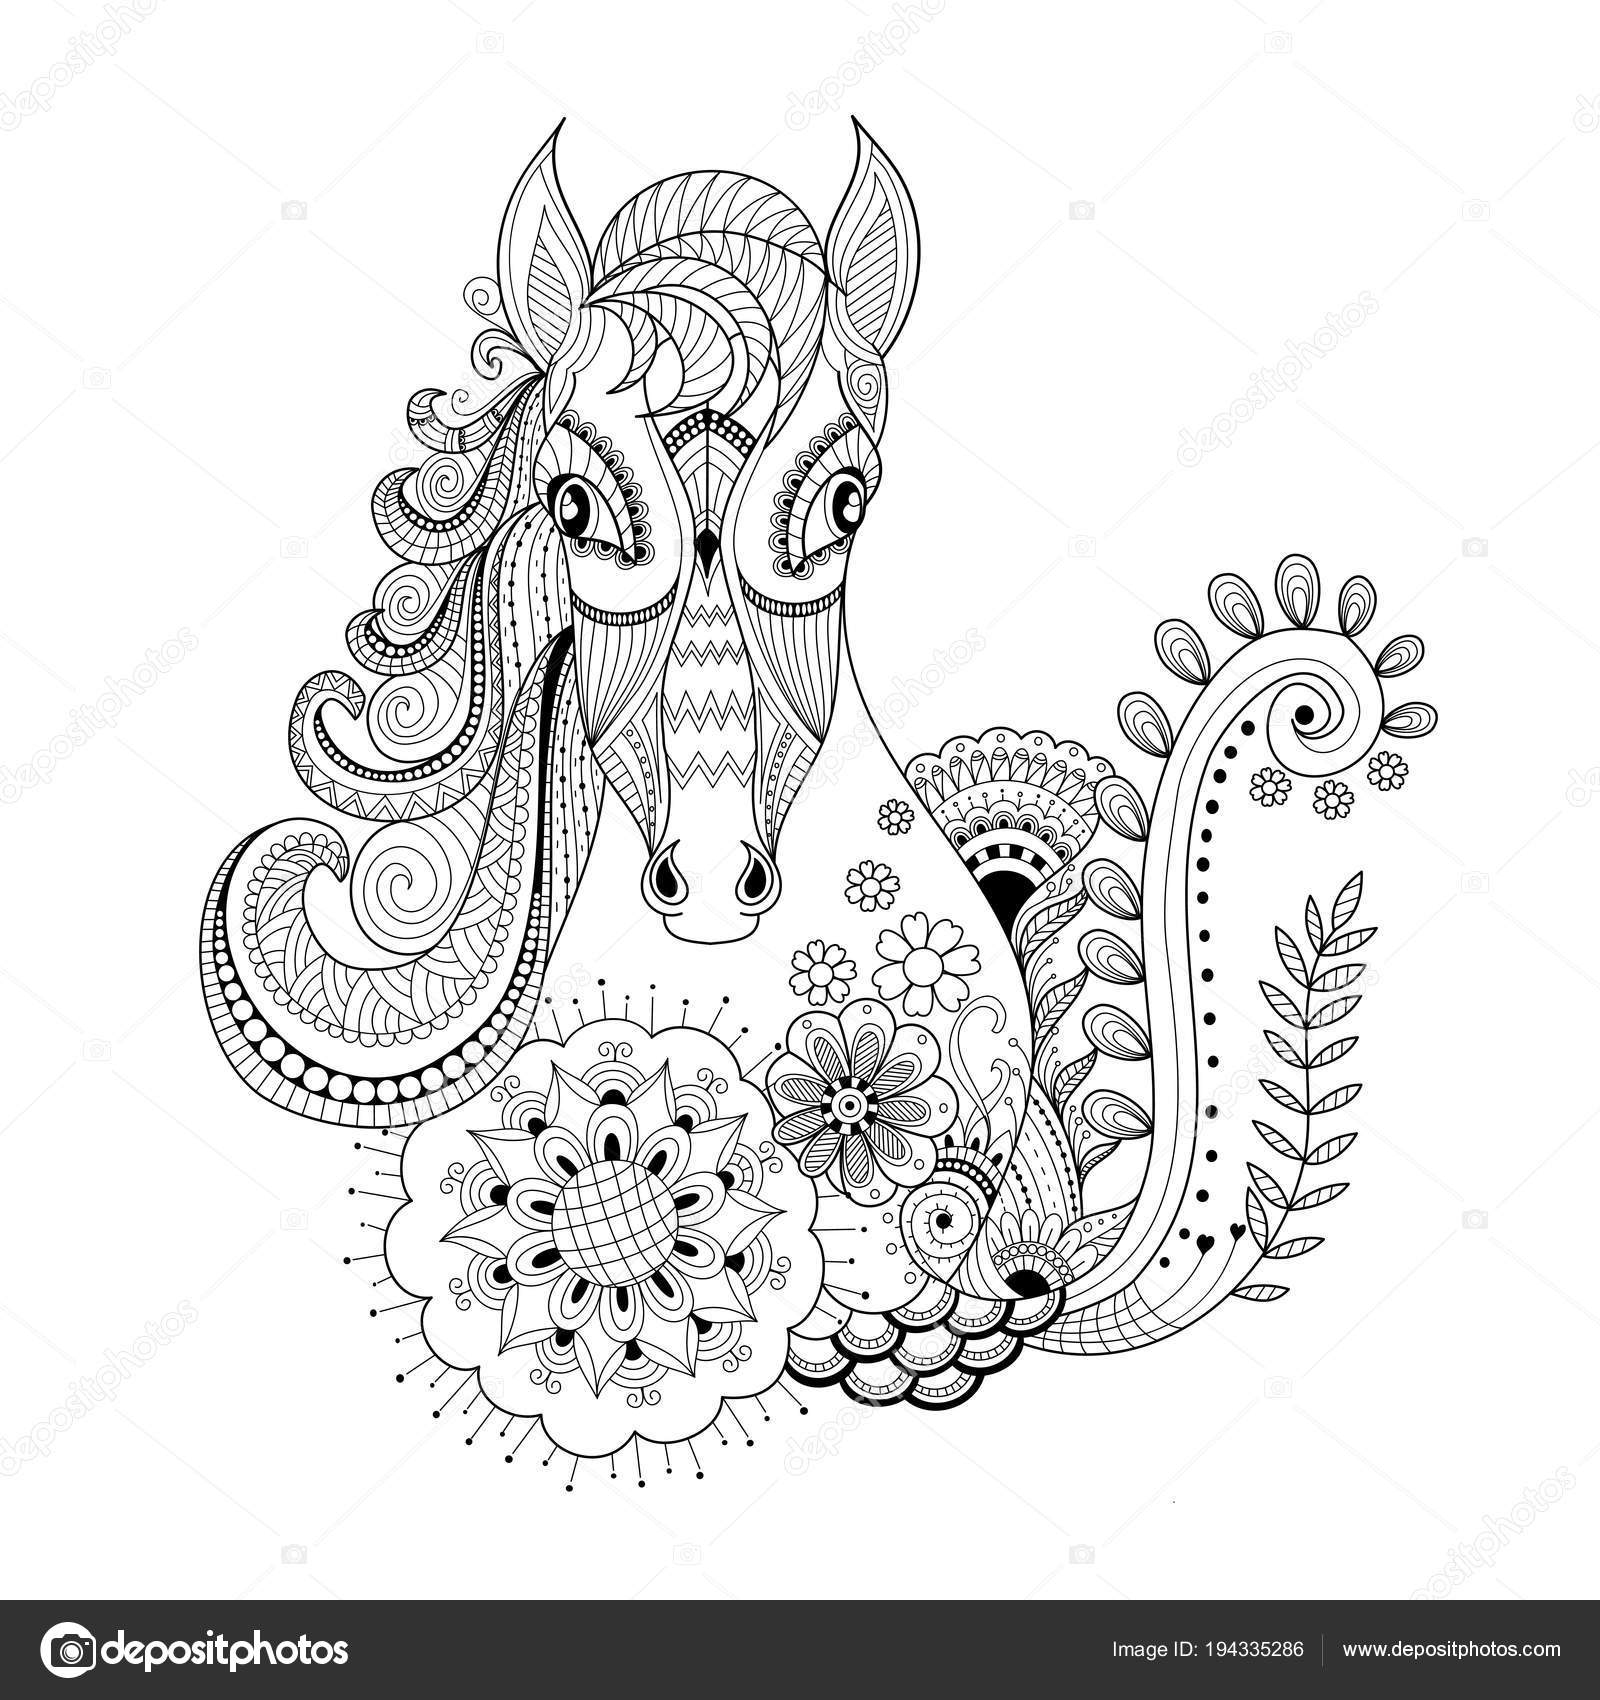 horse zentangle coloring pages easy 32 zentangle horse pattern coloring pages zentangle coloring pages horse